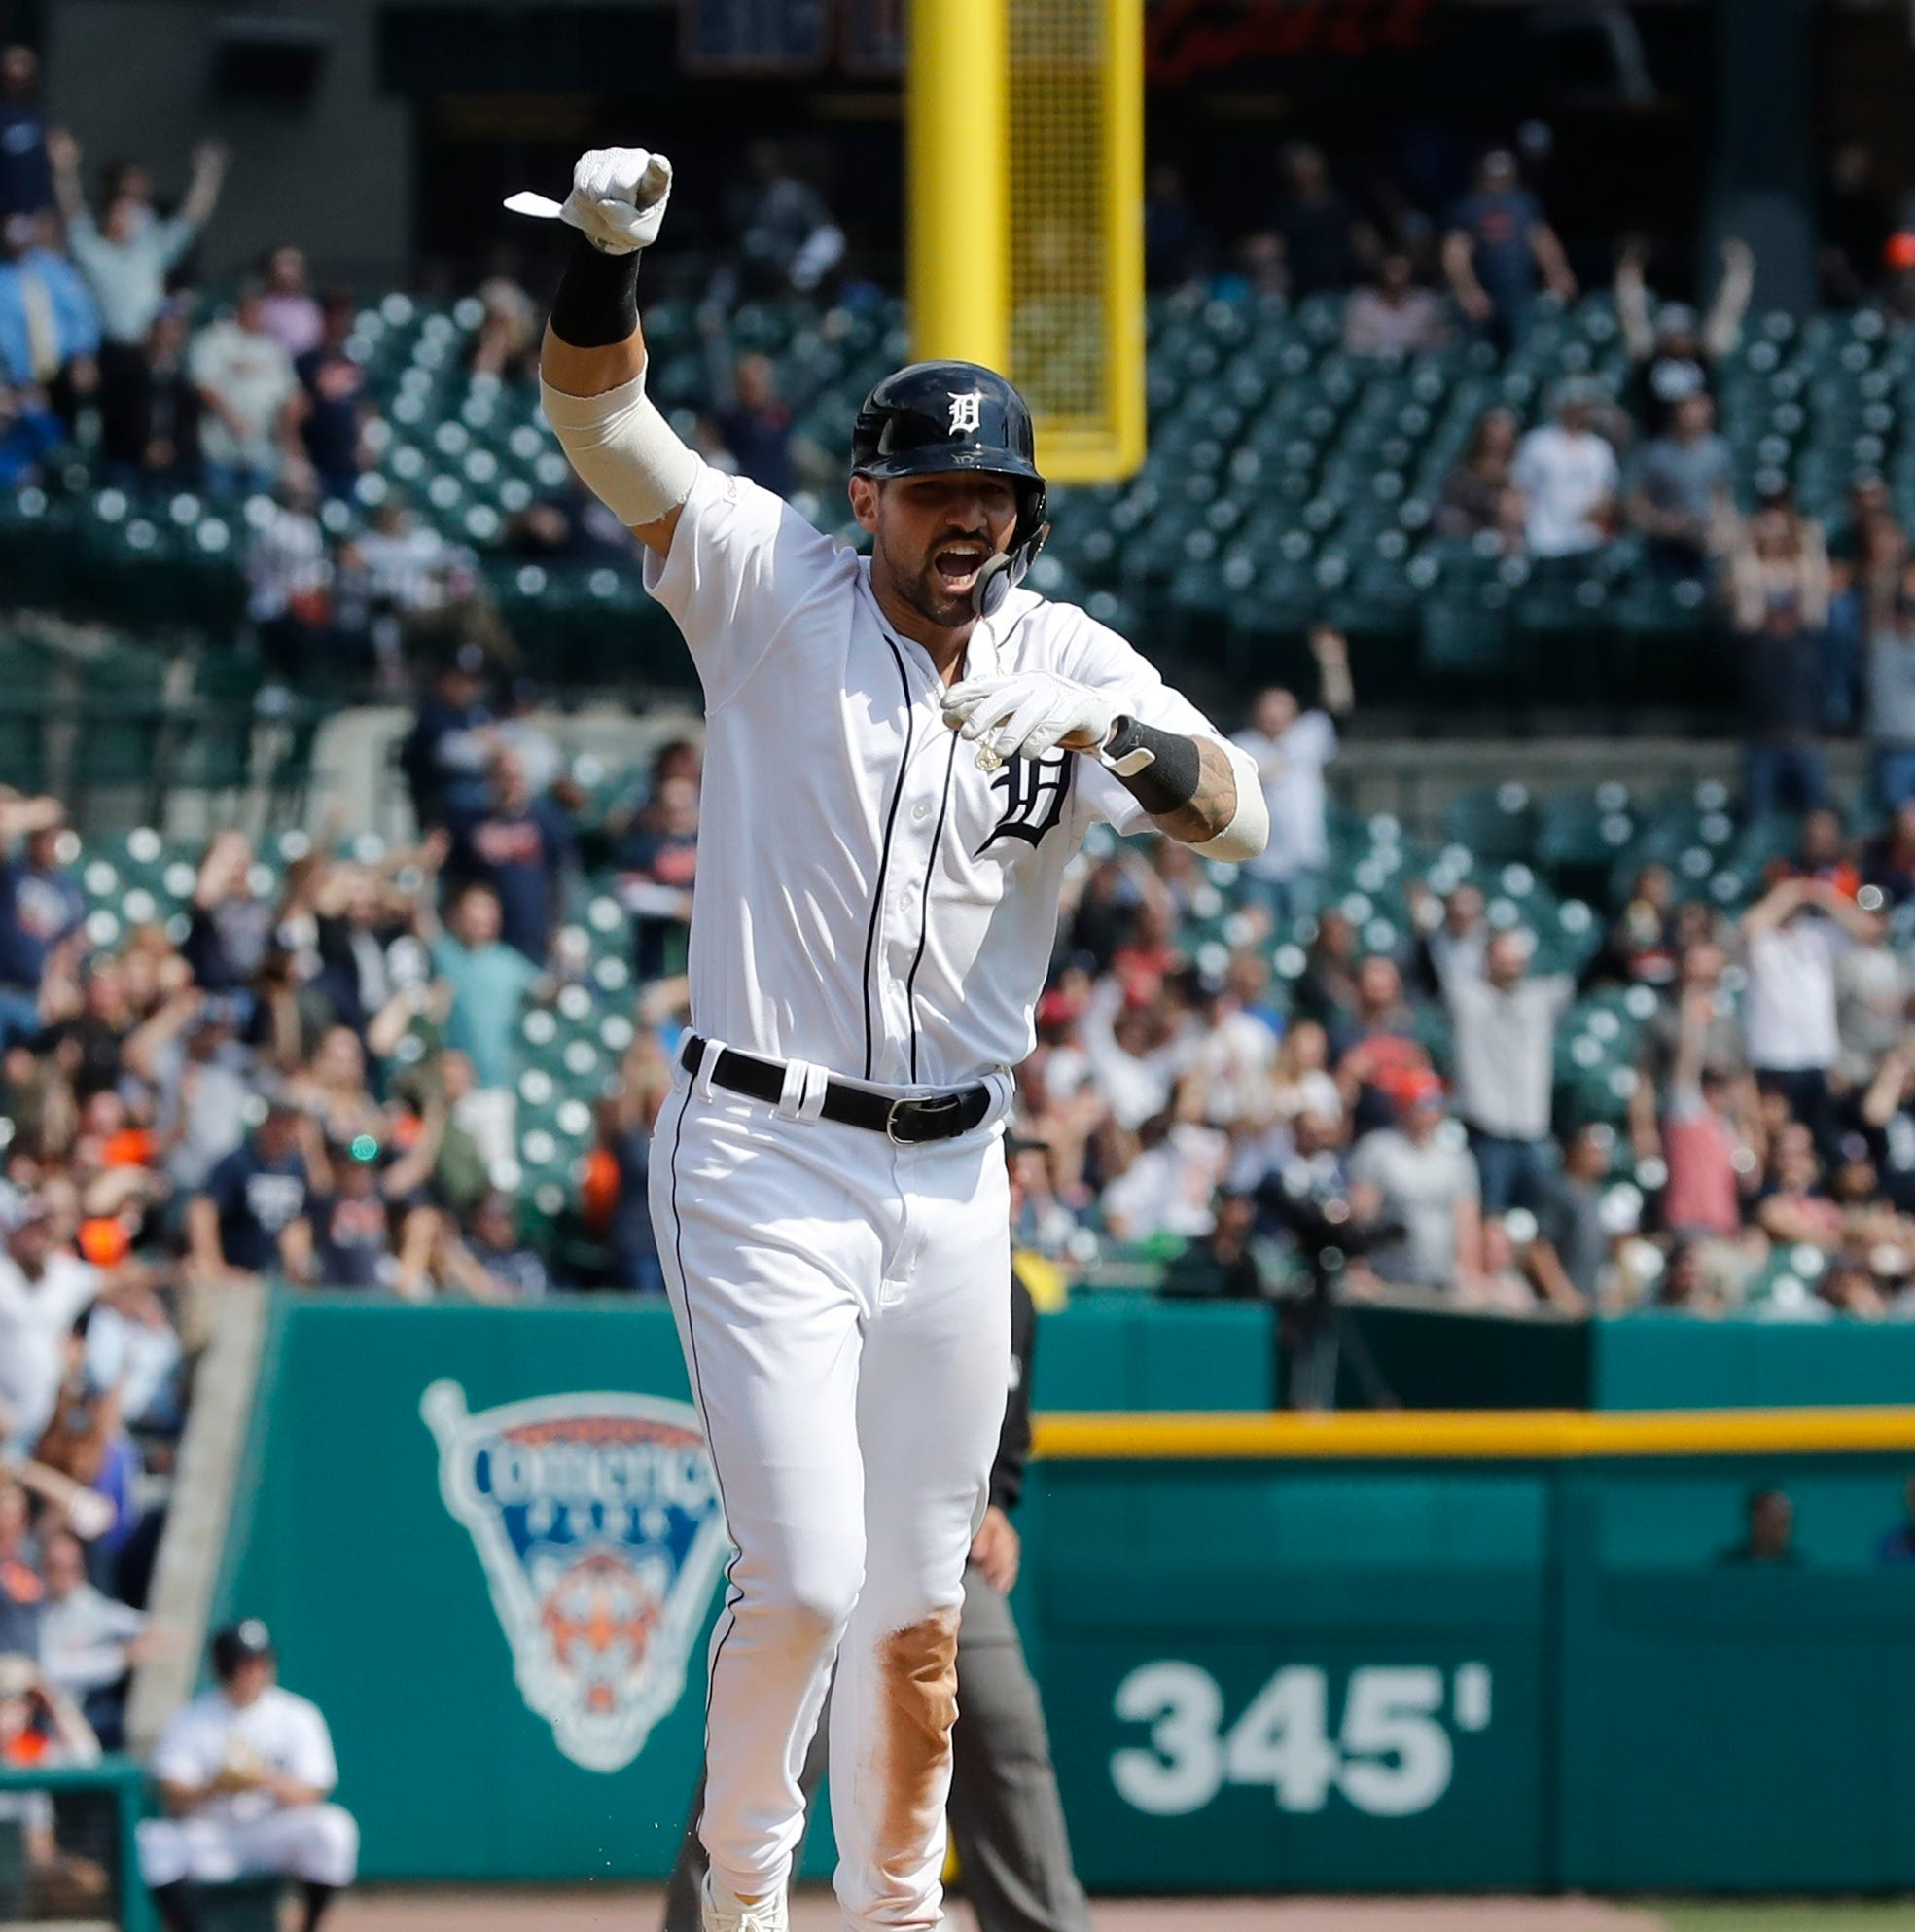 Nicholas Castellanos has a new agent. How that impacts his future in Detroit